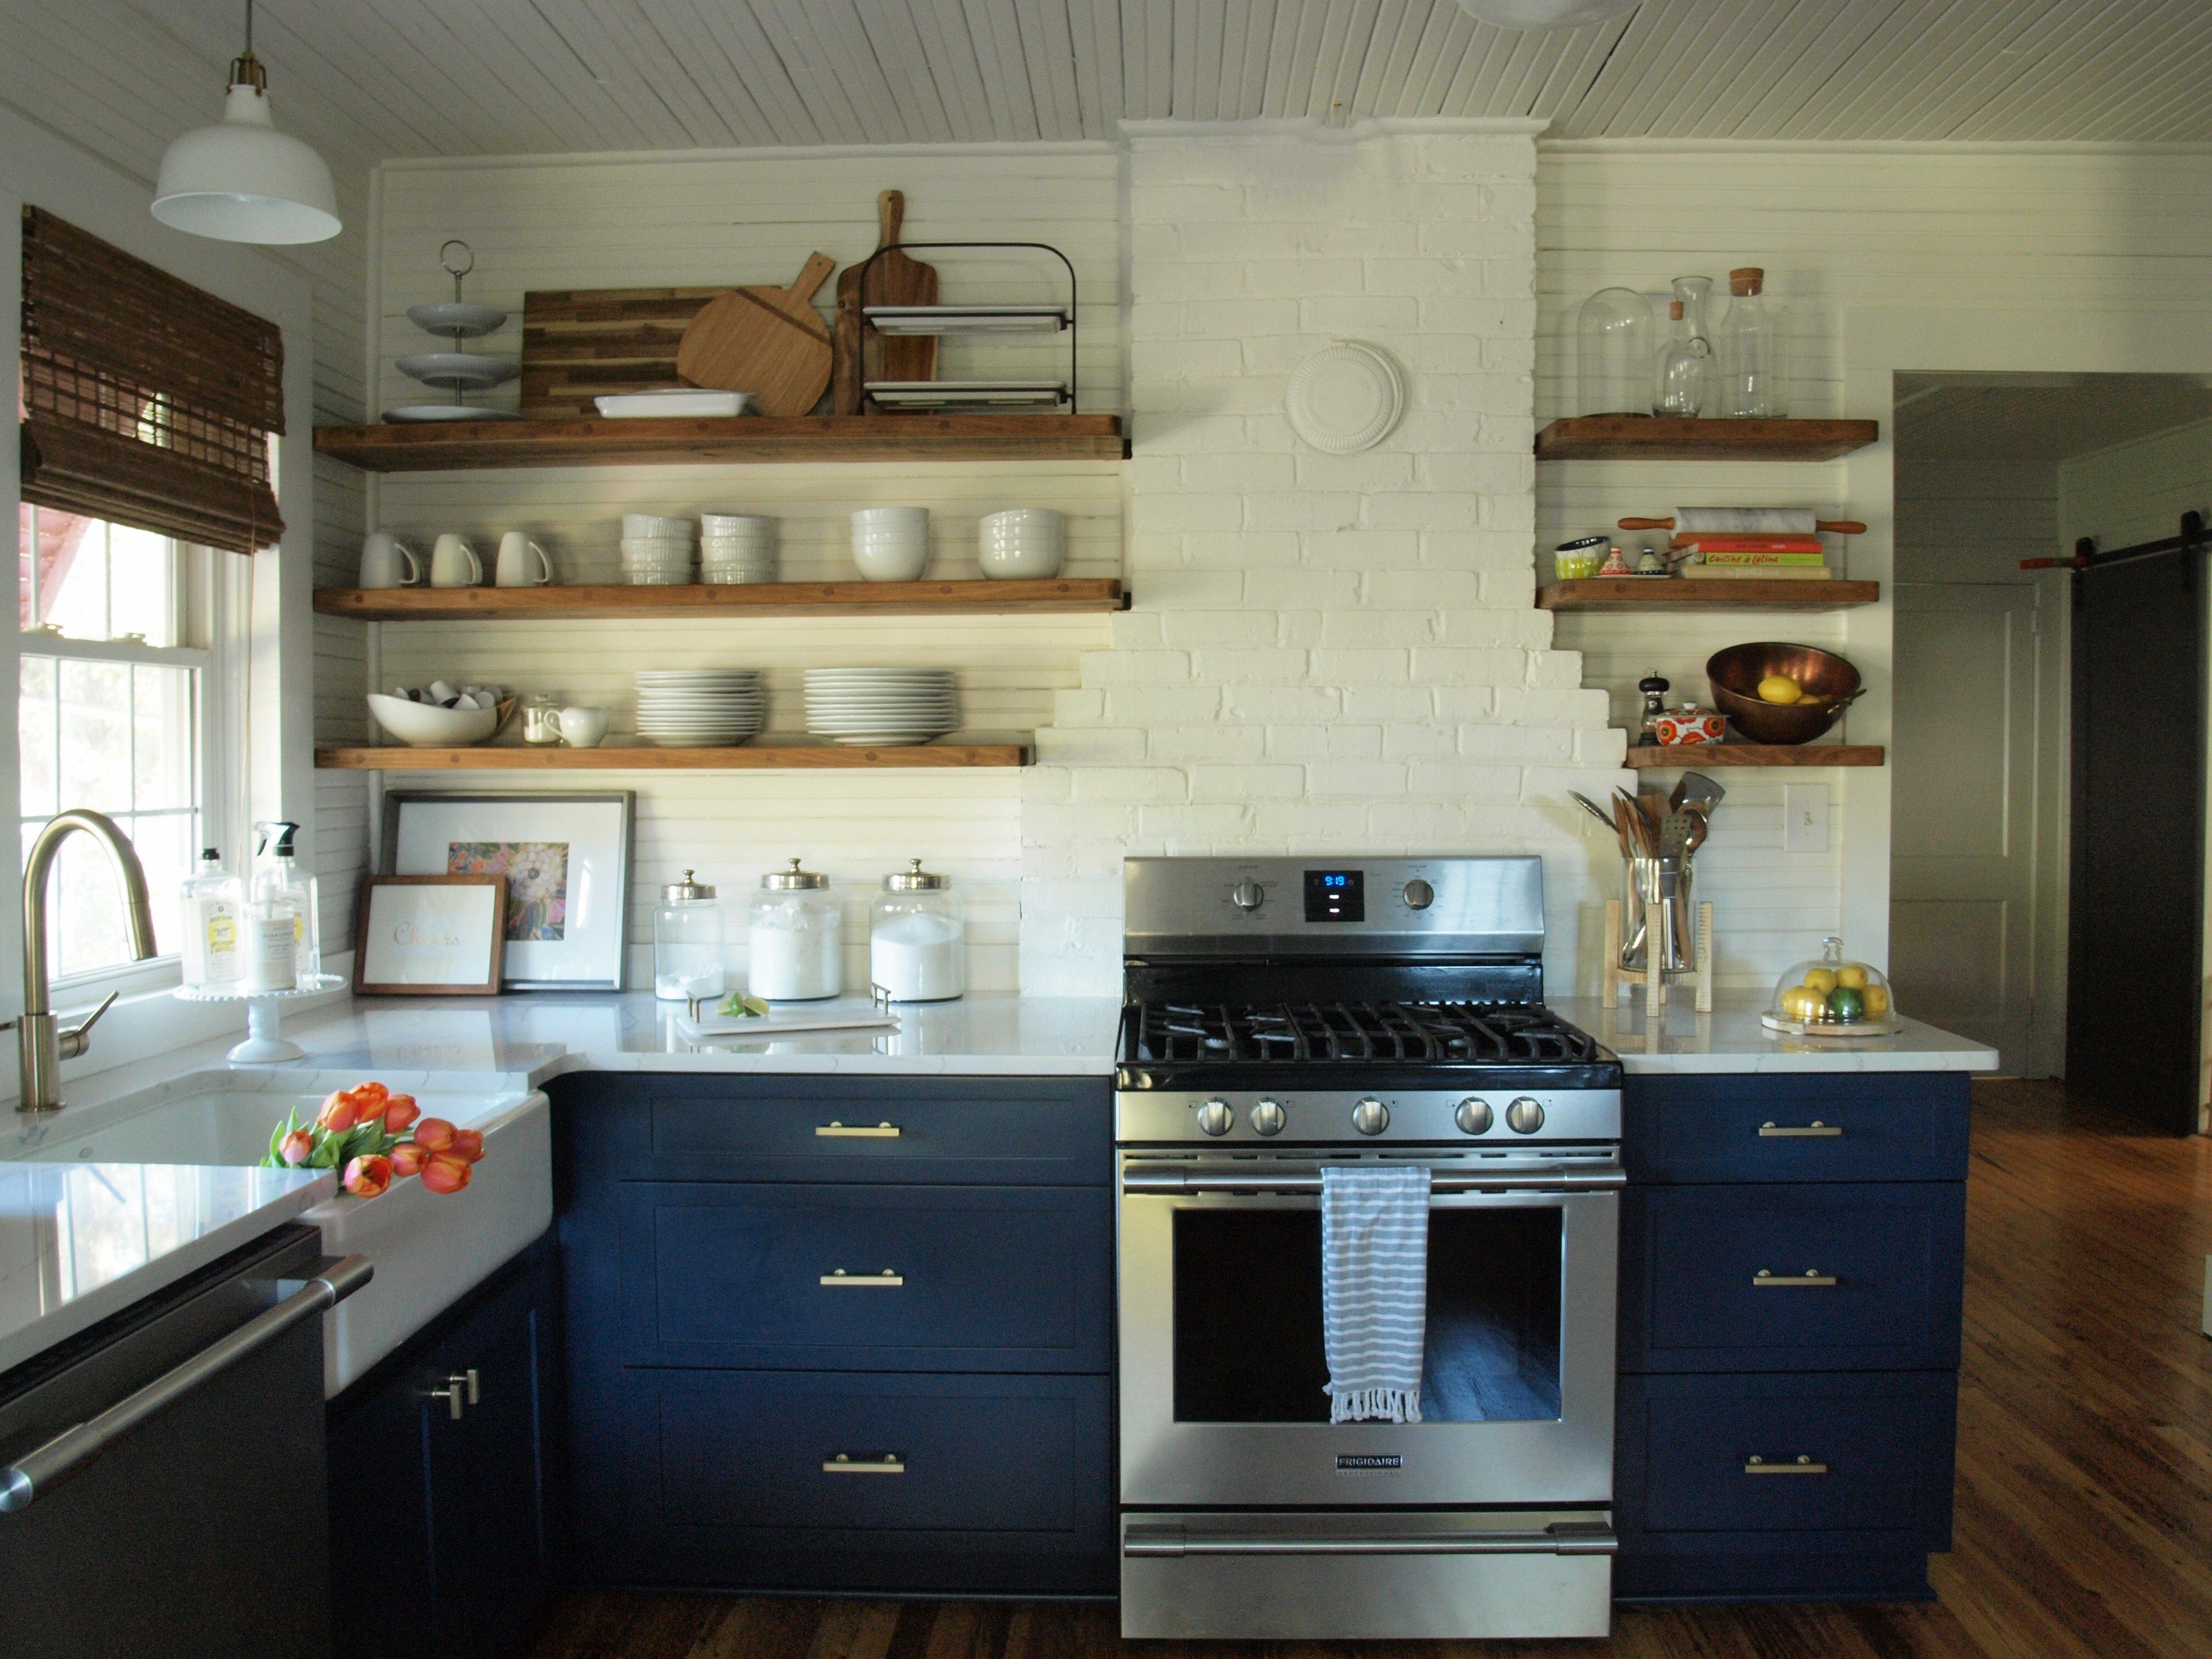 Explore Navy Kitchen Cabinets, Diy Kitchen Ideas, And More!